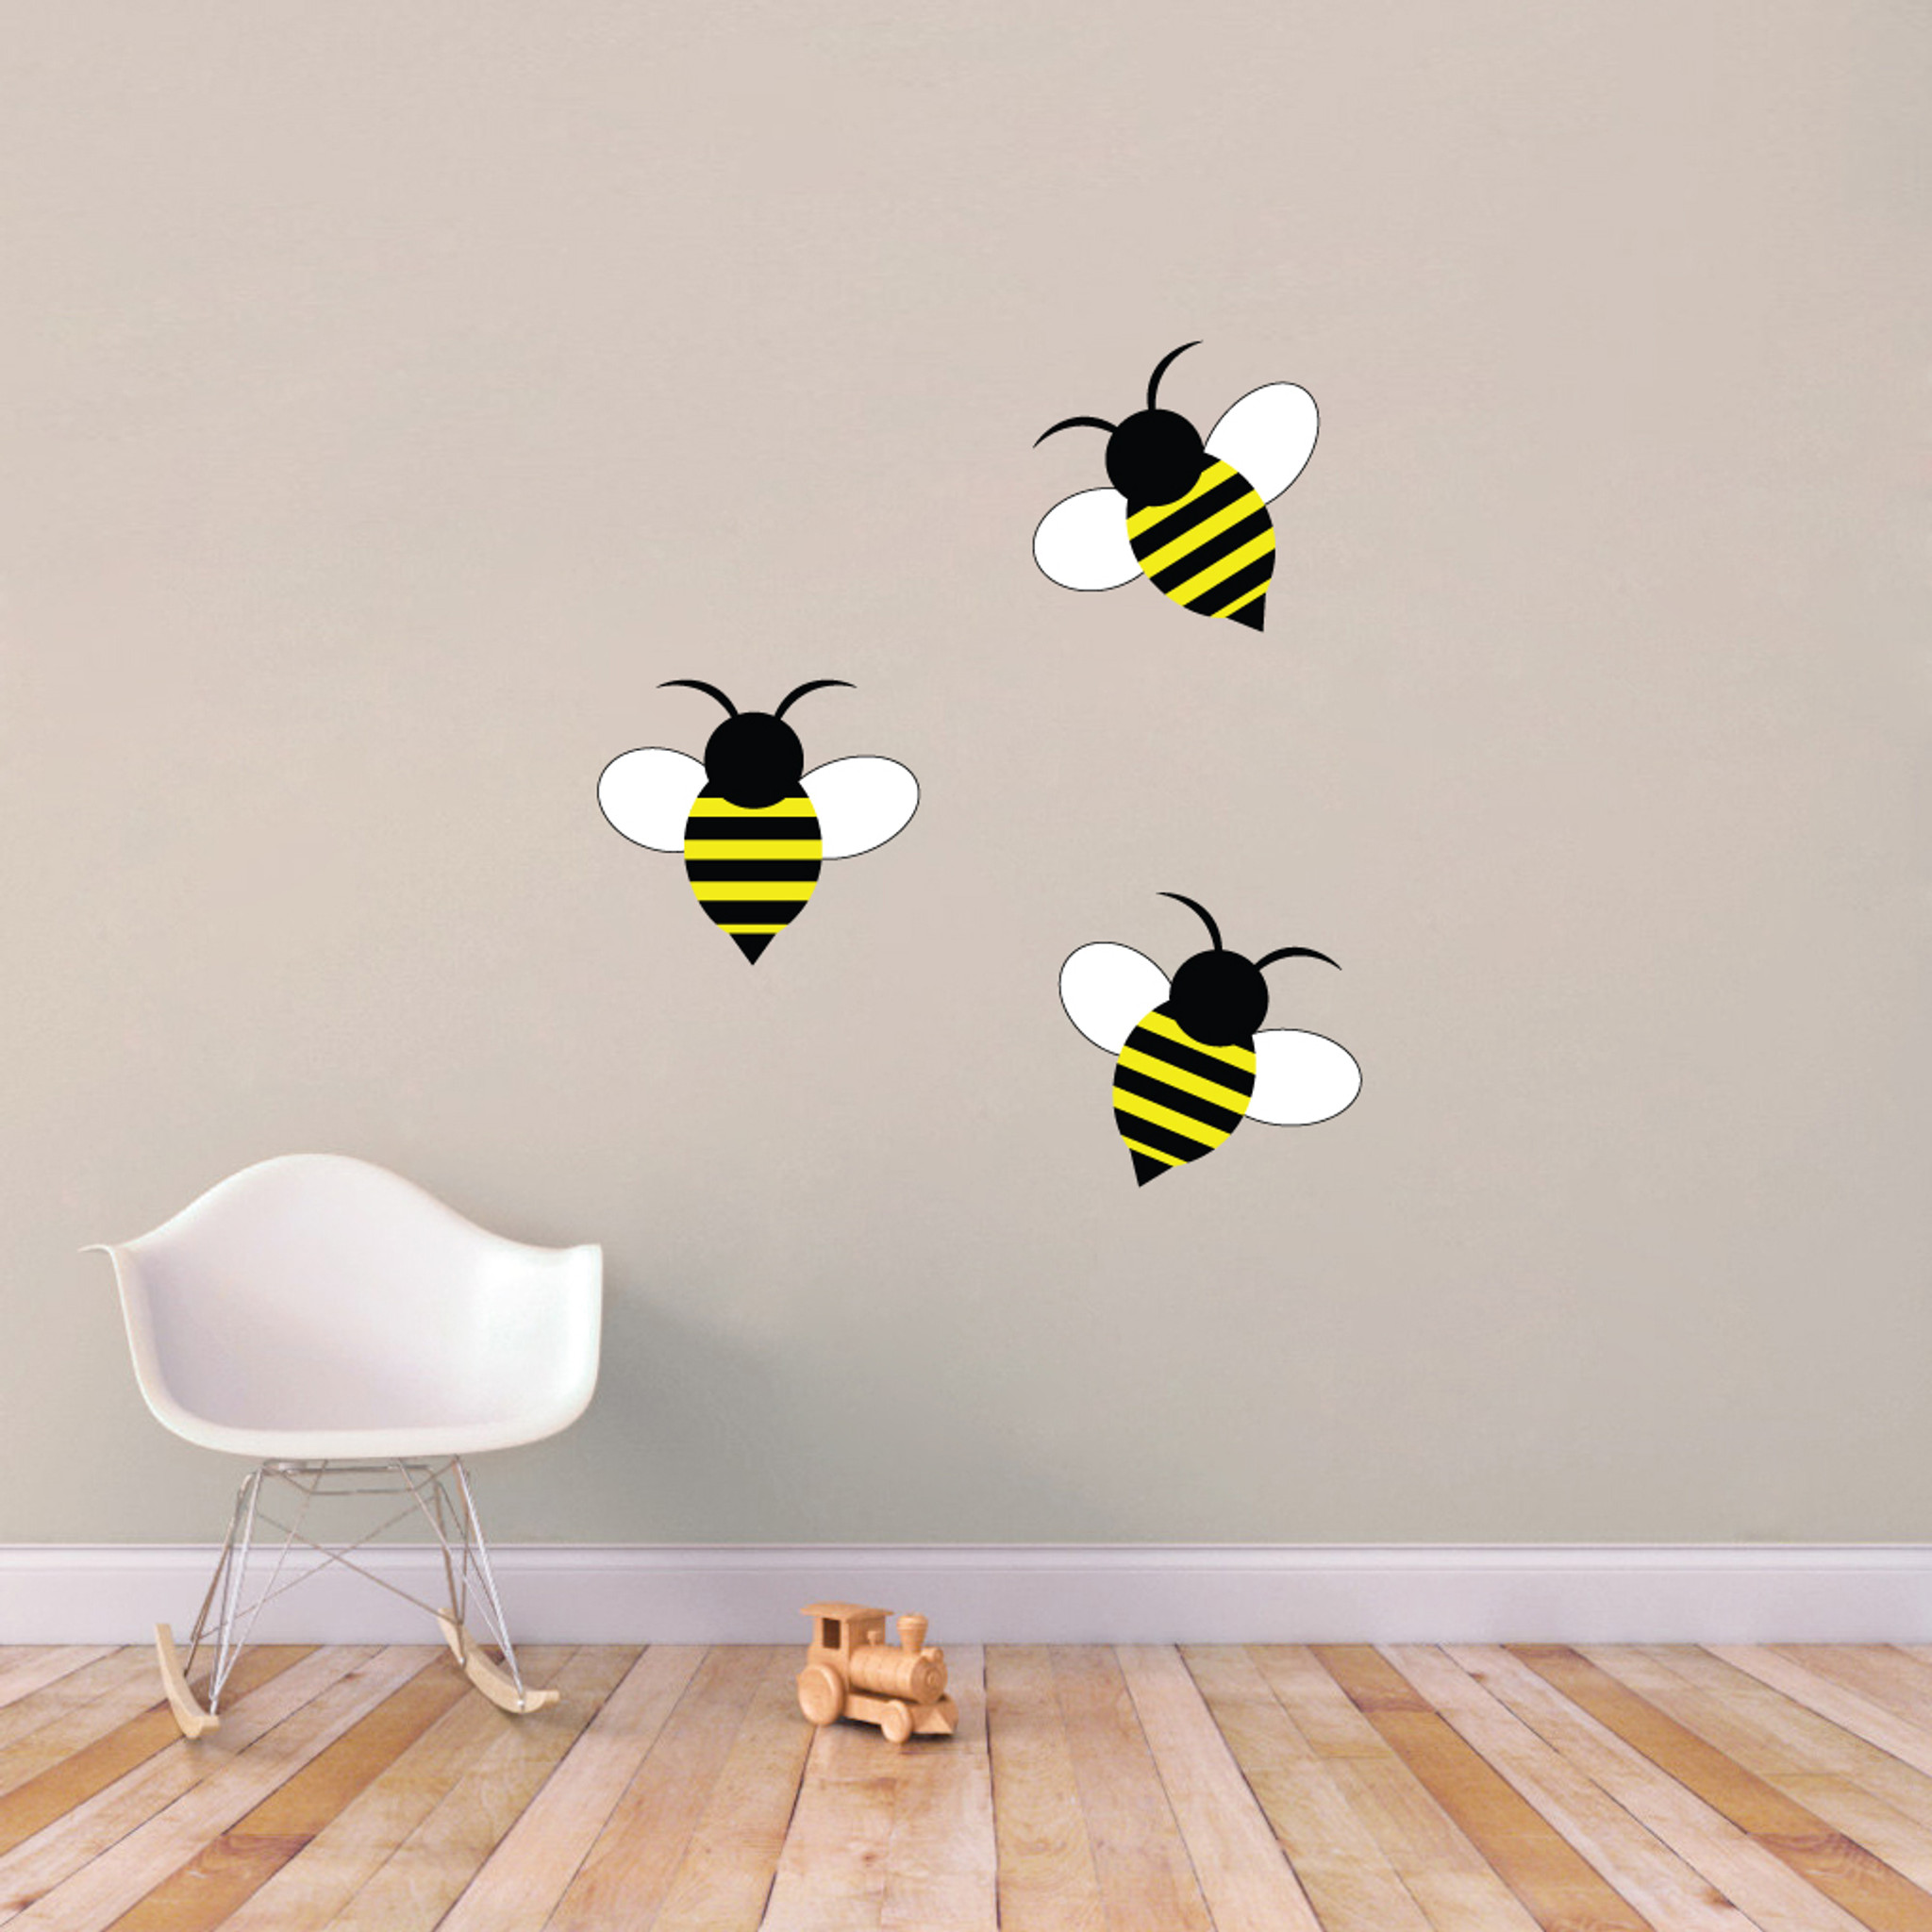 Bumble bees printed wall decals wall art wall murals for Bumble bee mural